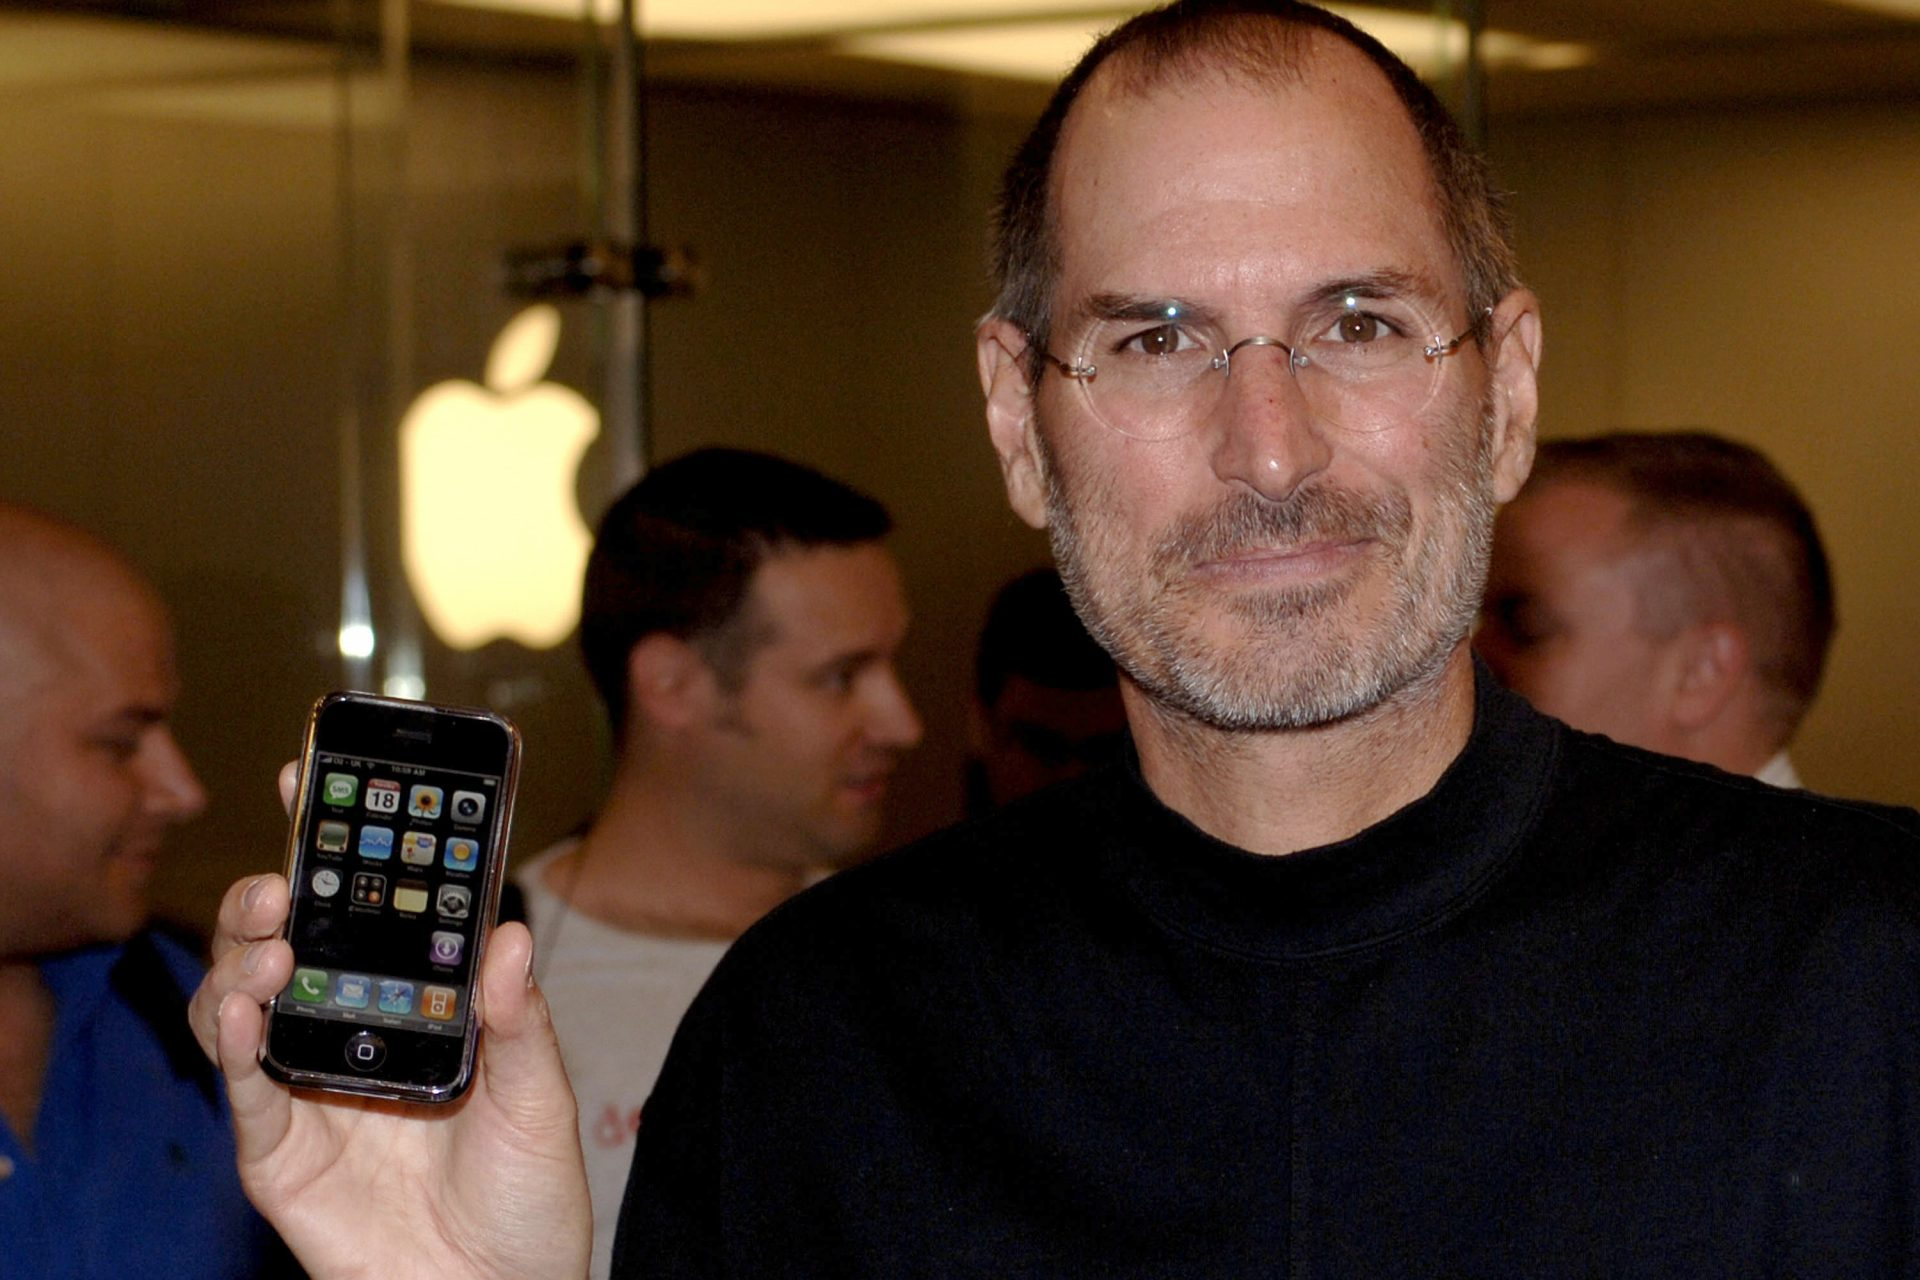 The iPhone's changing faces from 2007 to the present day